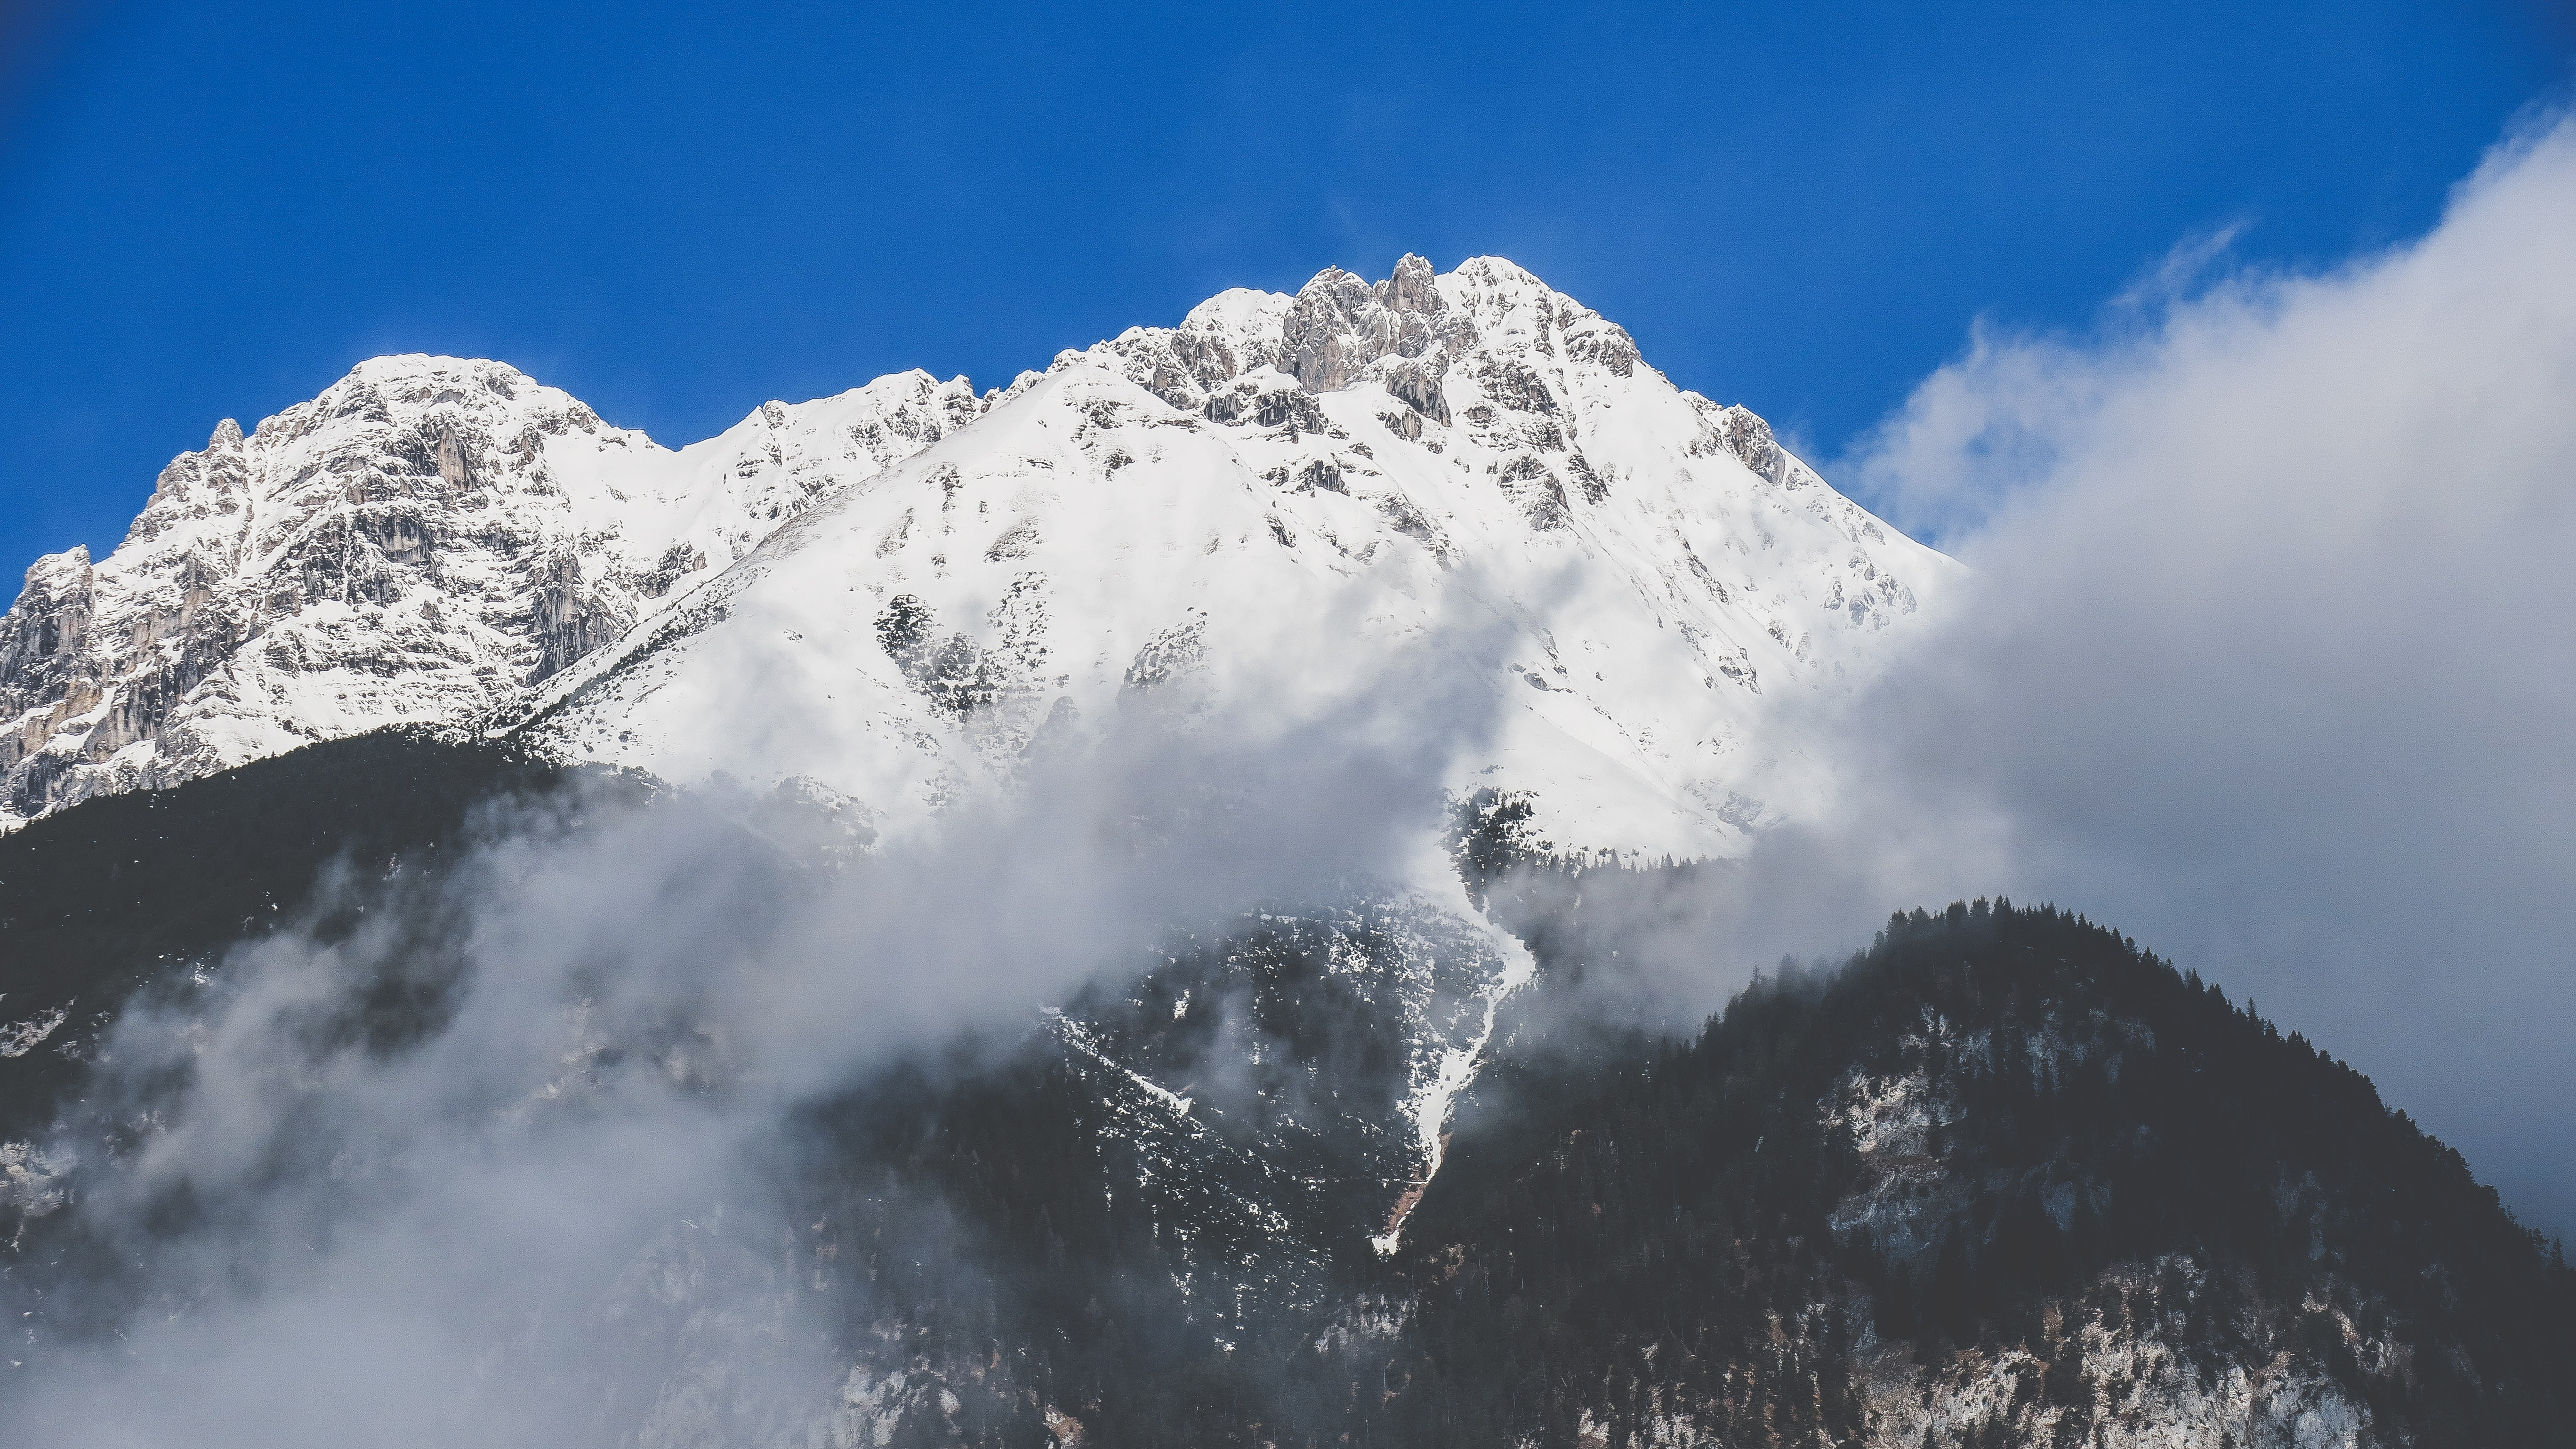 snowy mountain covered by clouds during daytime